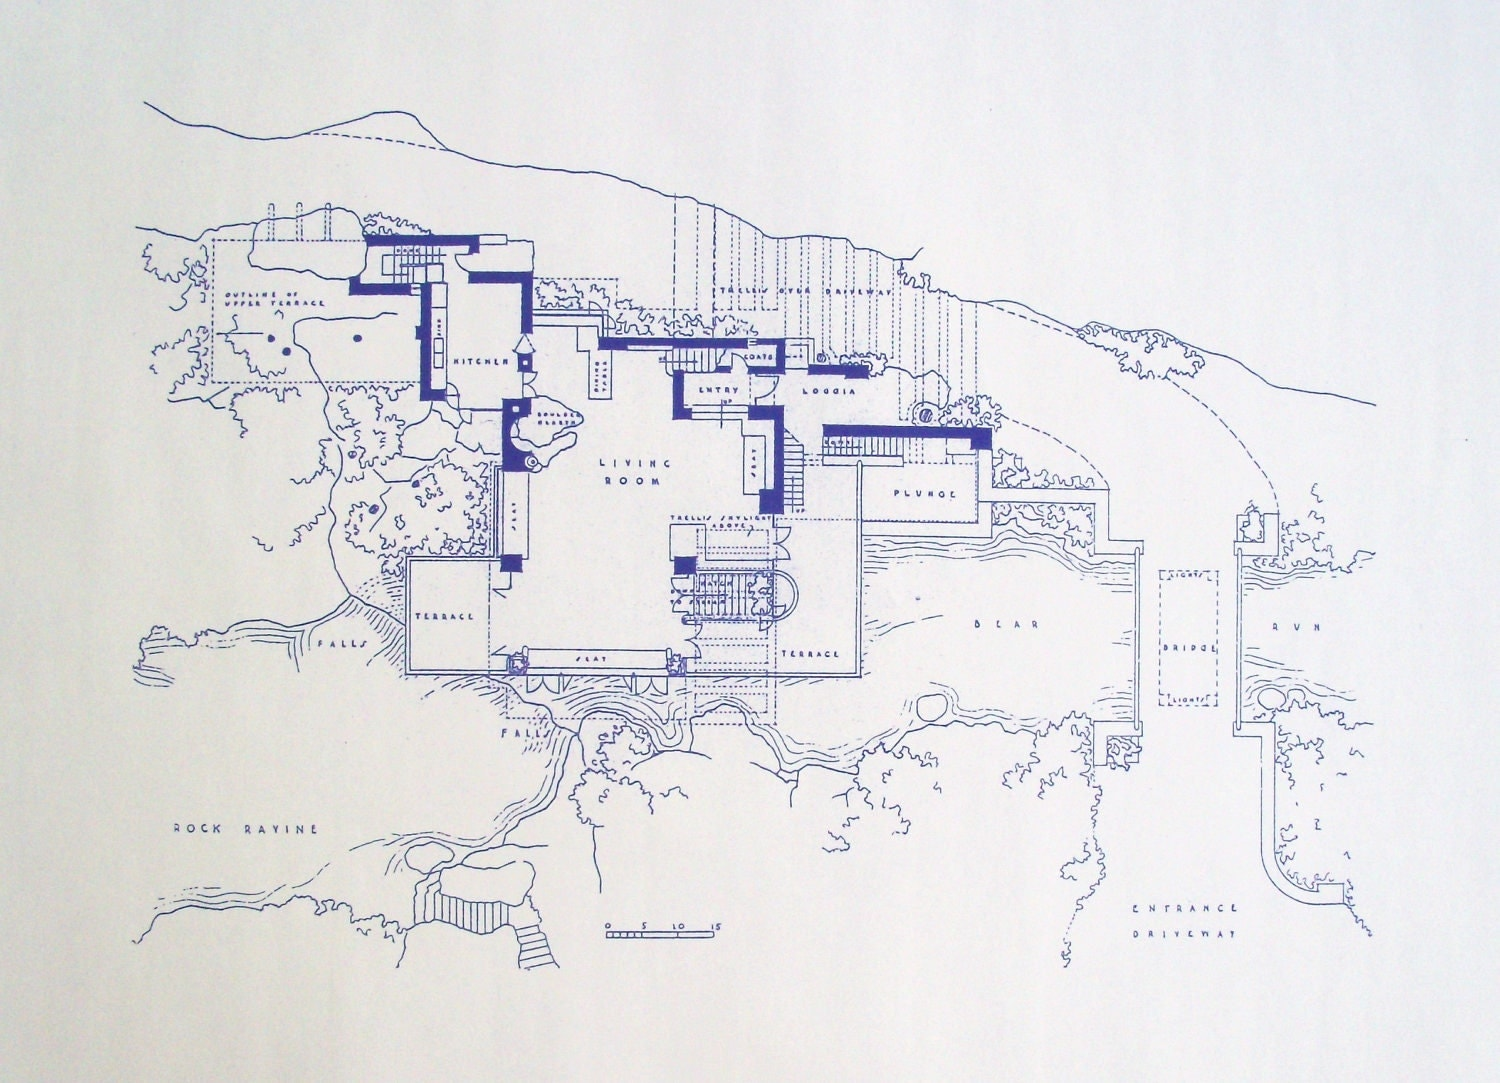 Frank Lloyd Wright Falling Water Site Blueprint By